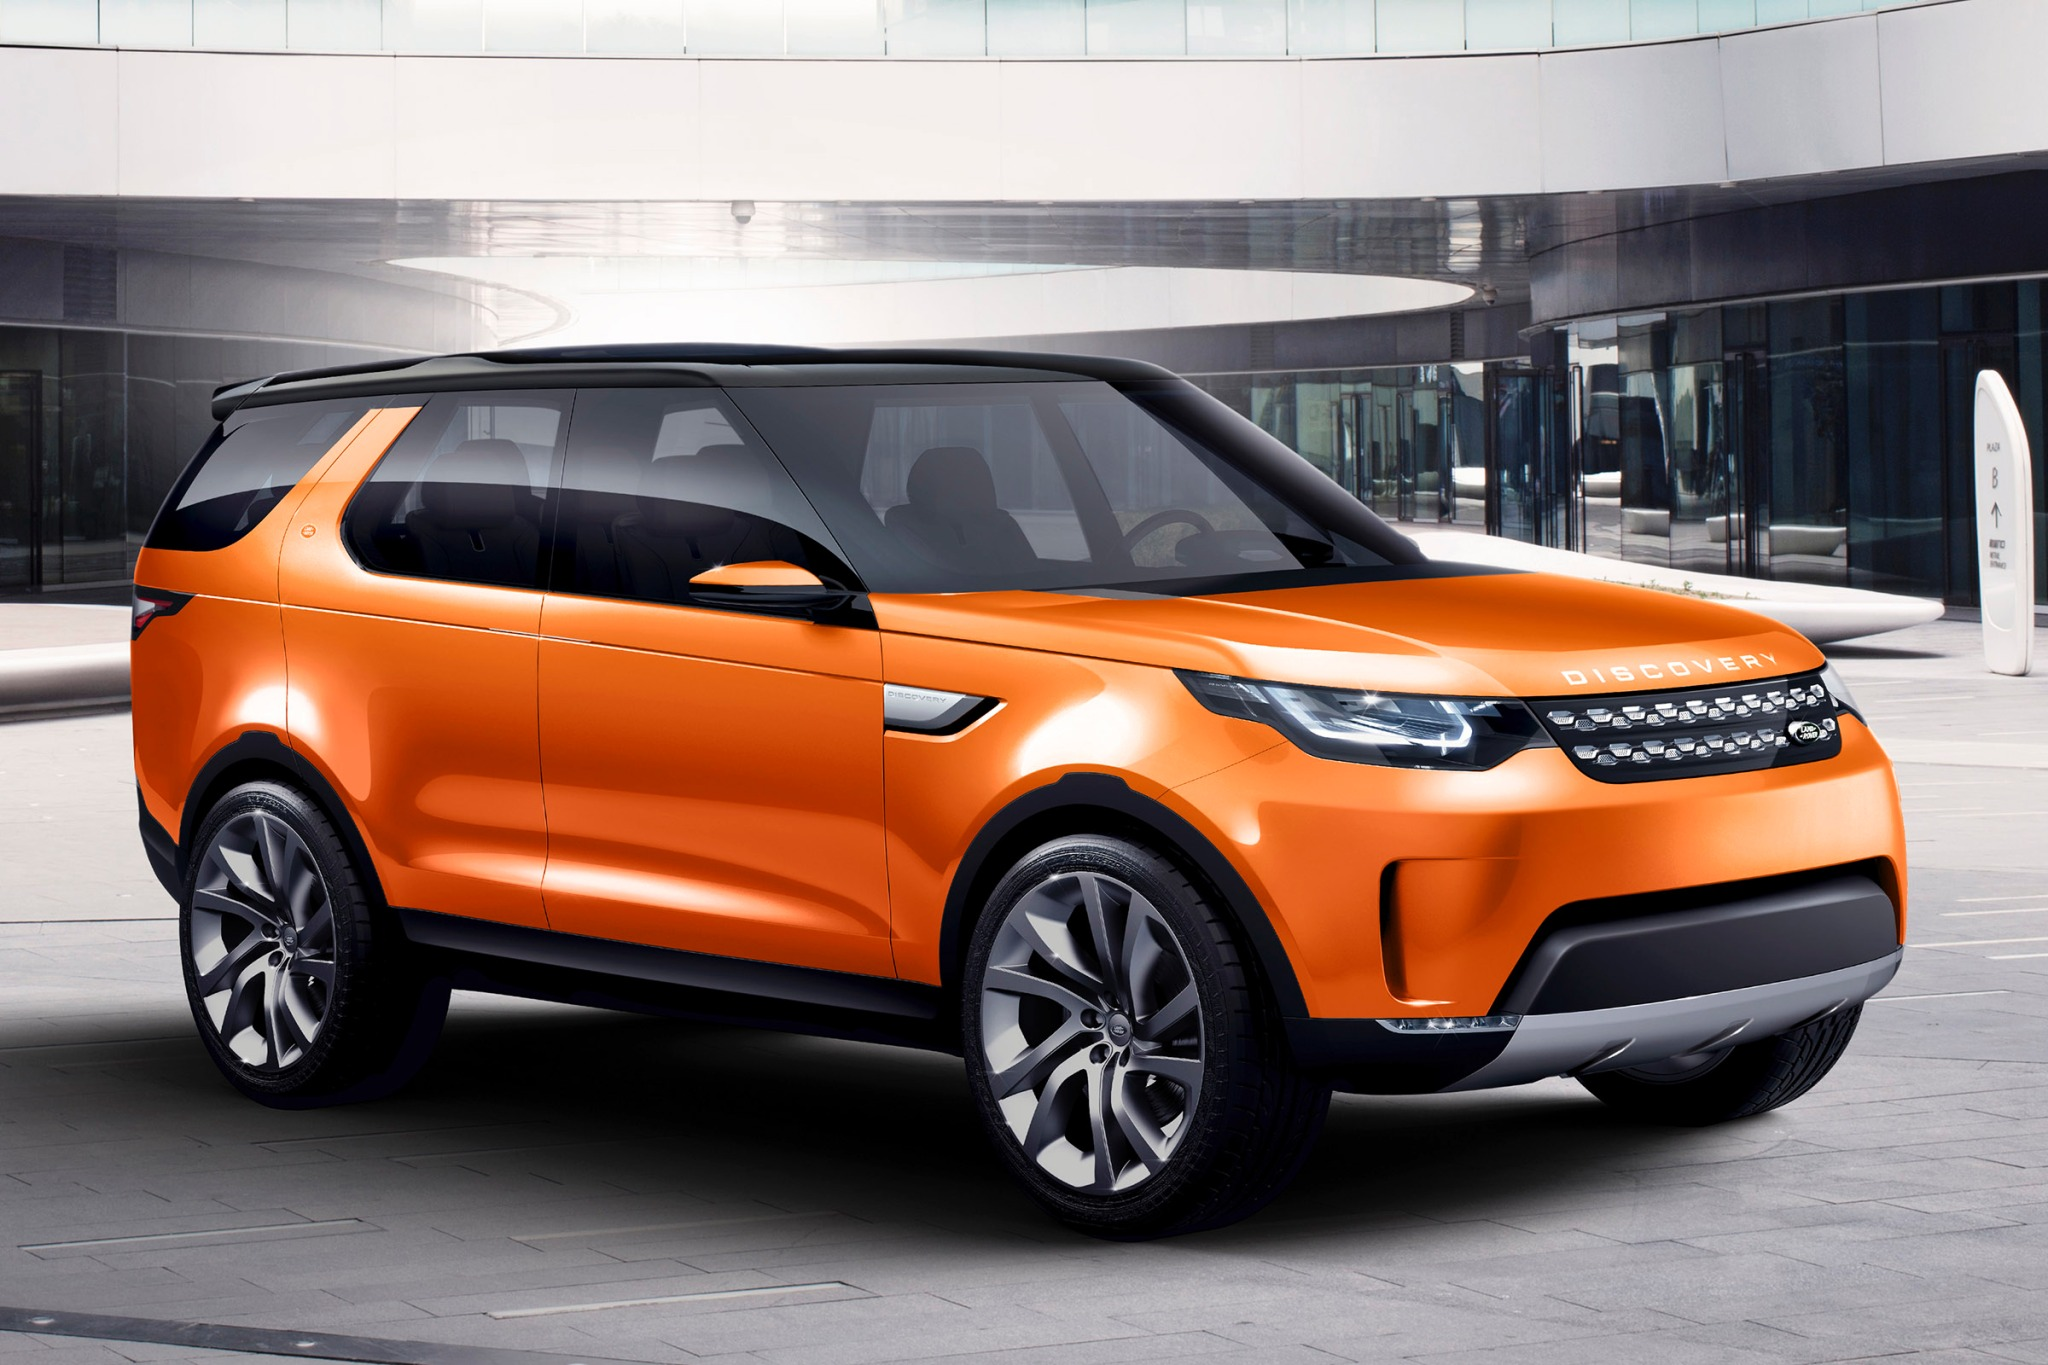 2016 Land Rover Discovery exterior #1